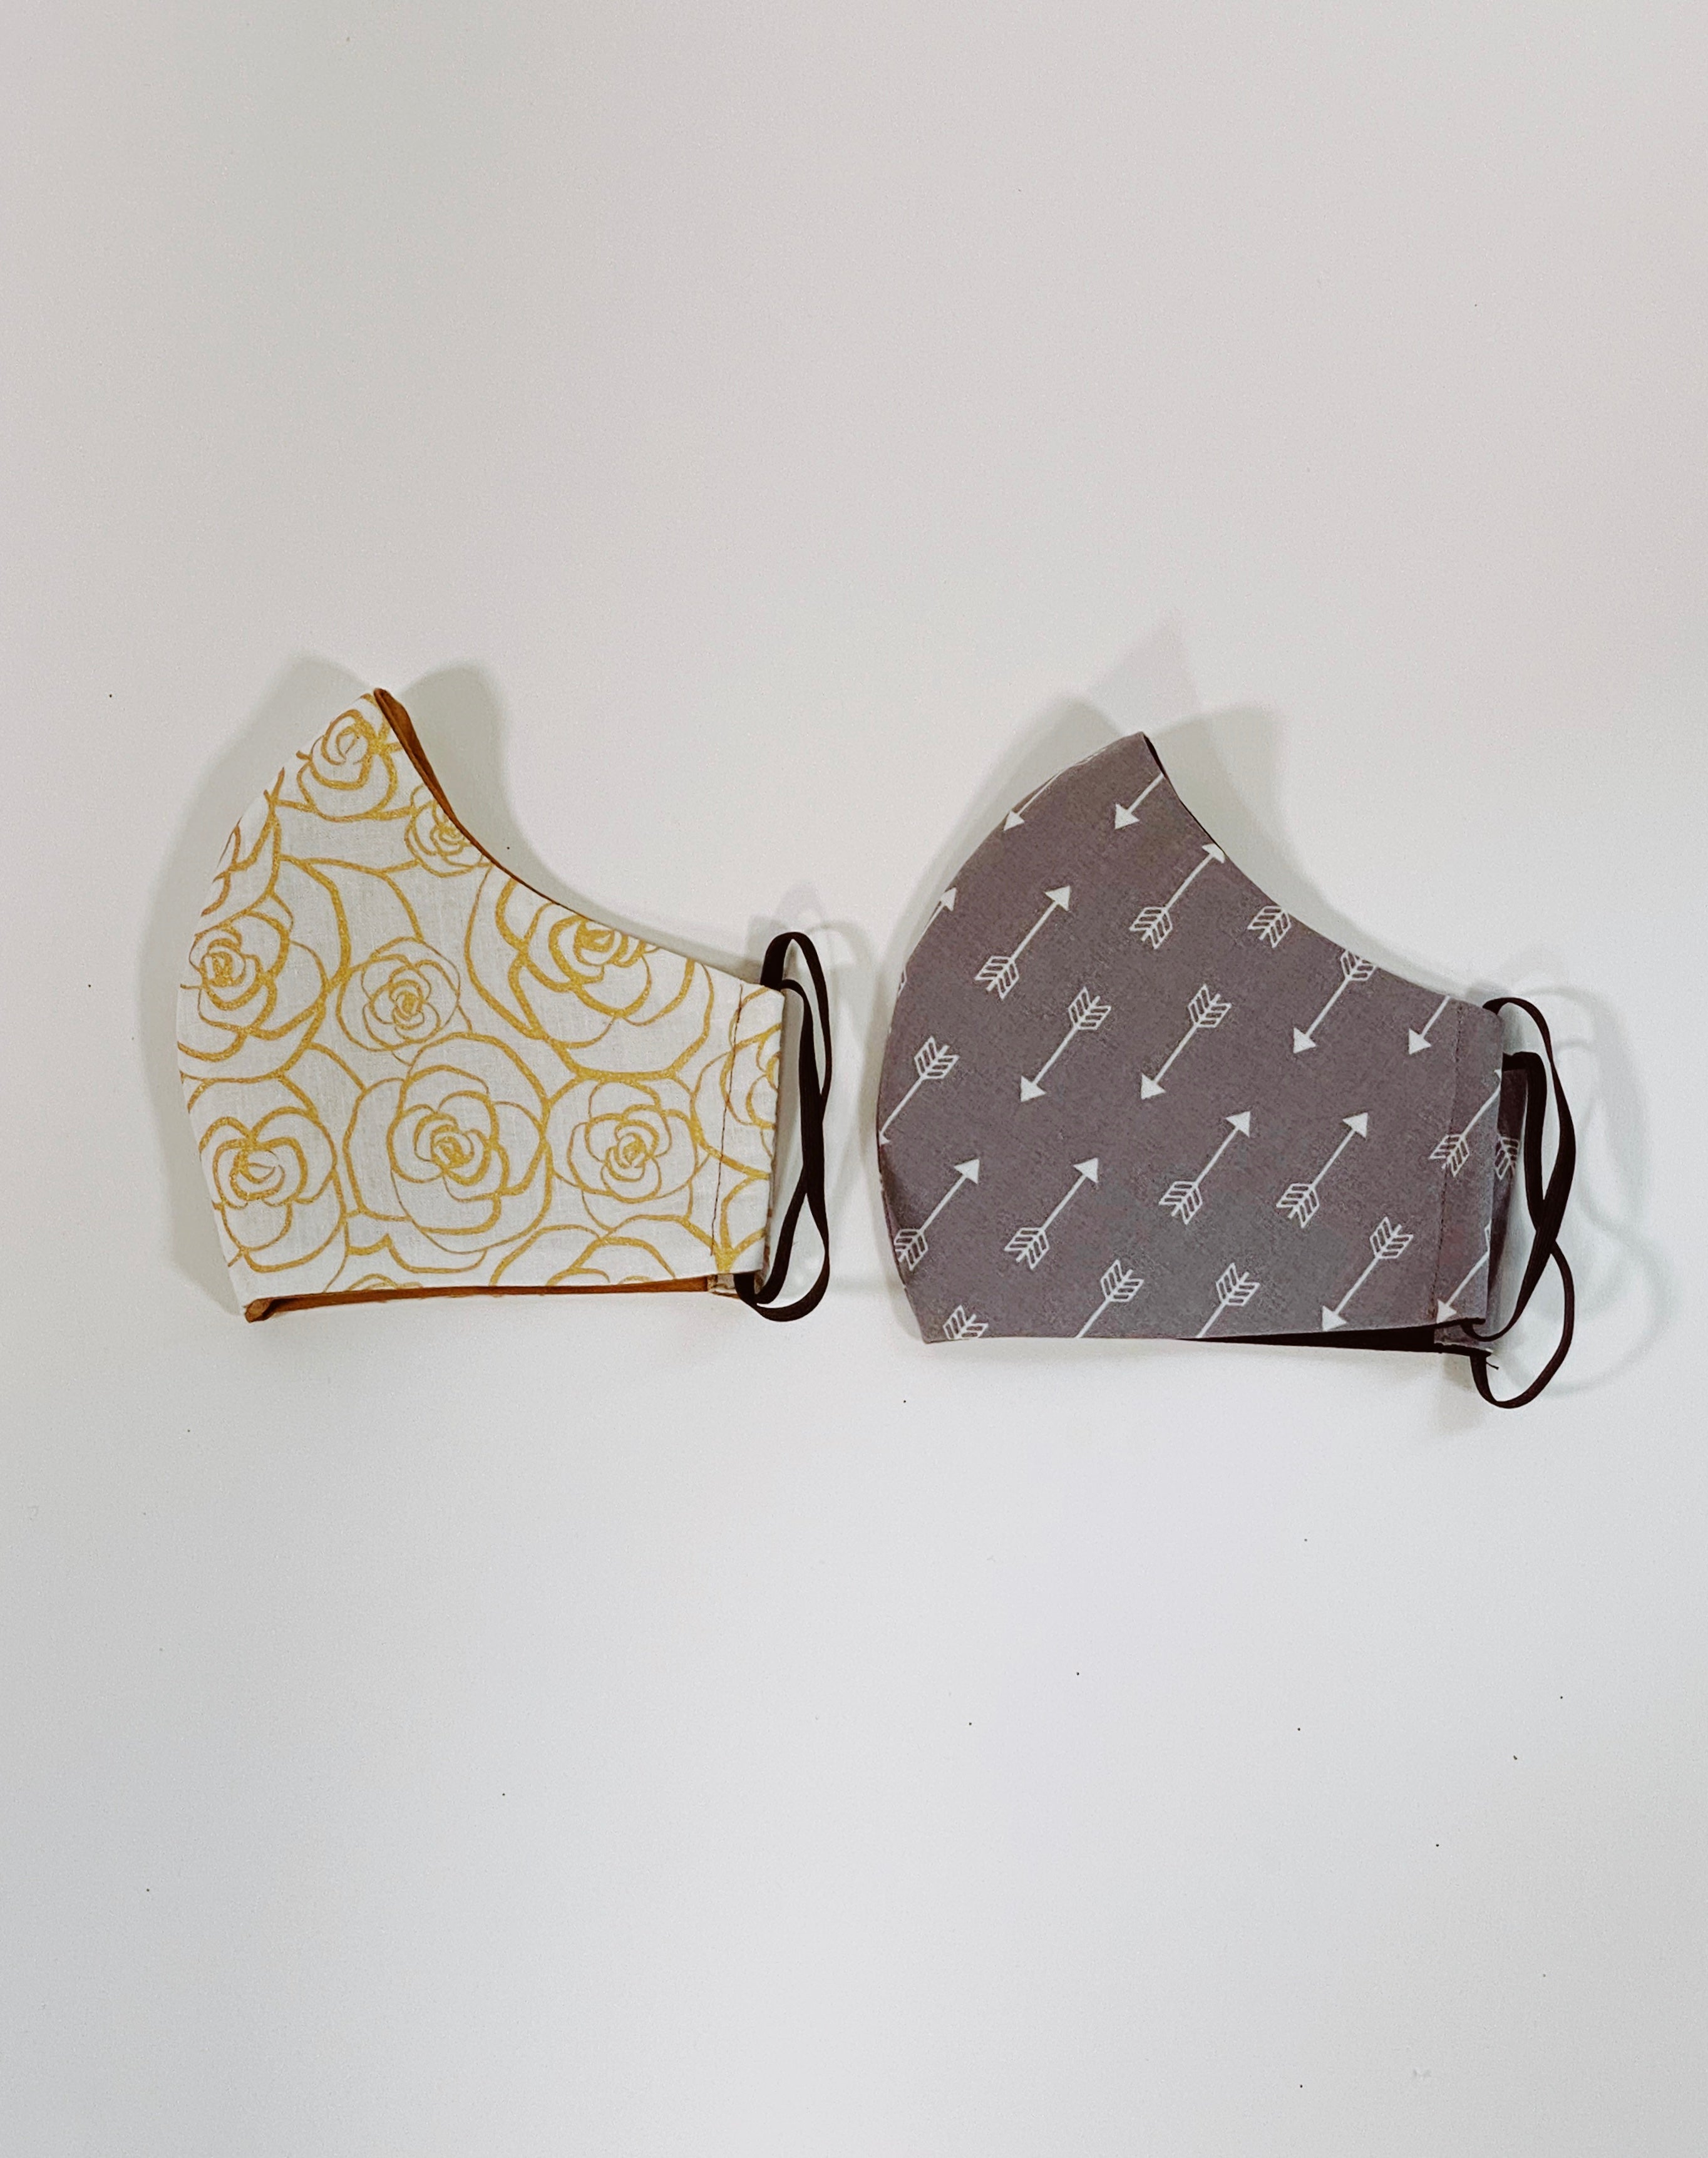 Printed Re-useable Face Masks - Set of 2